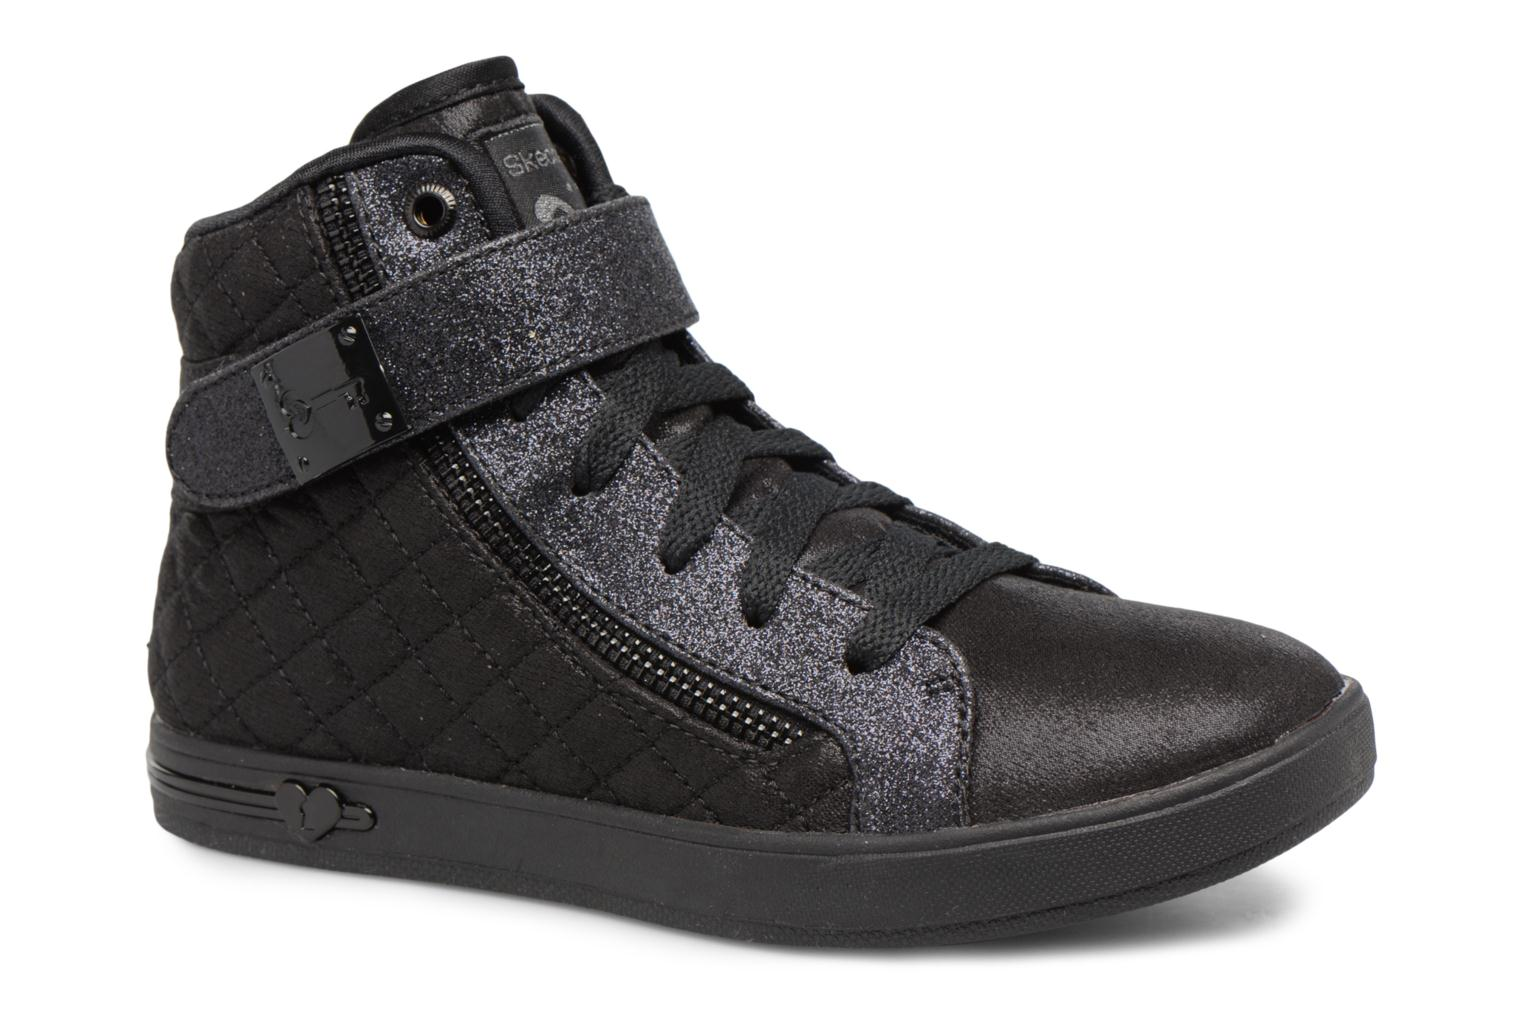 Quilted Quilted BBK Skechers BBK Crush Crush Shoutouts Skechers Shoutouts pHvqxw